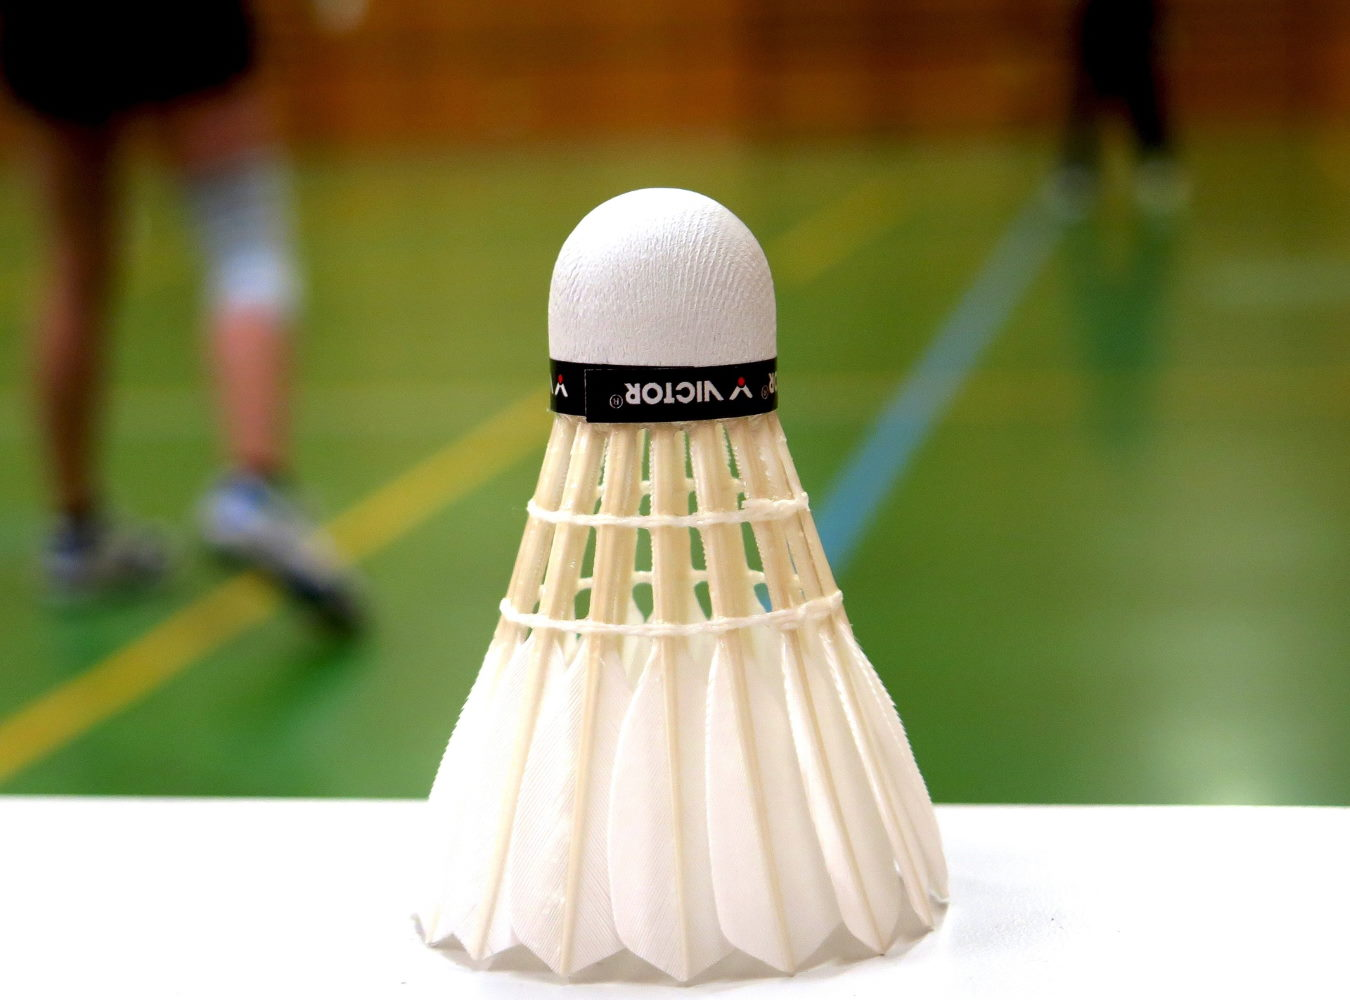 https://www.bcetupes.info/wp-content/uploads/2019/09/badminton_1350.jpg